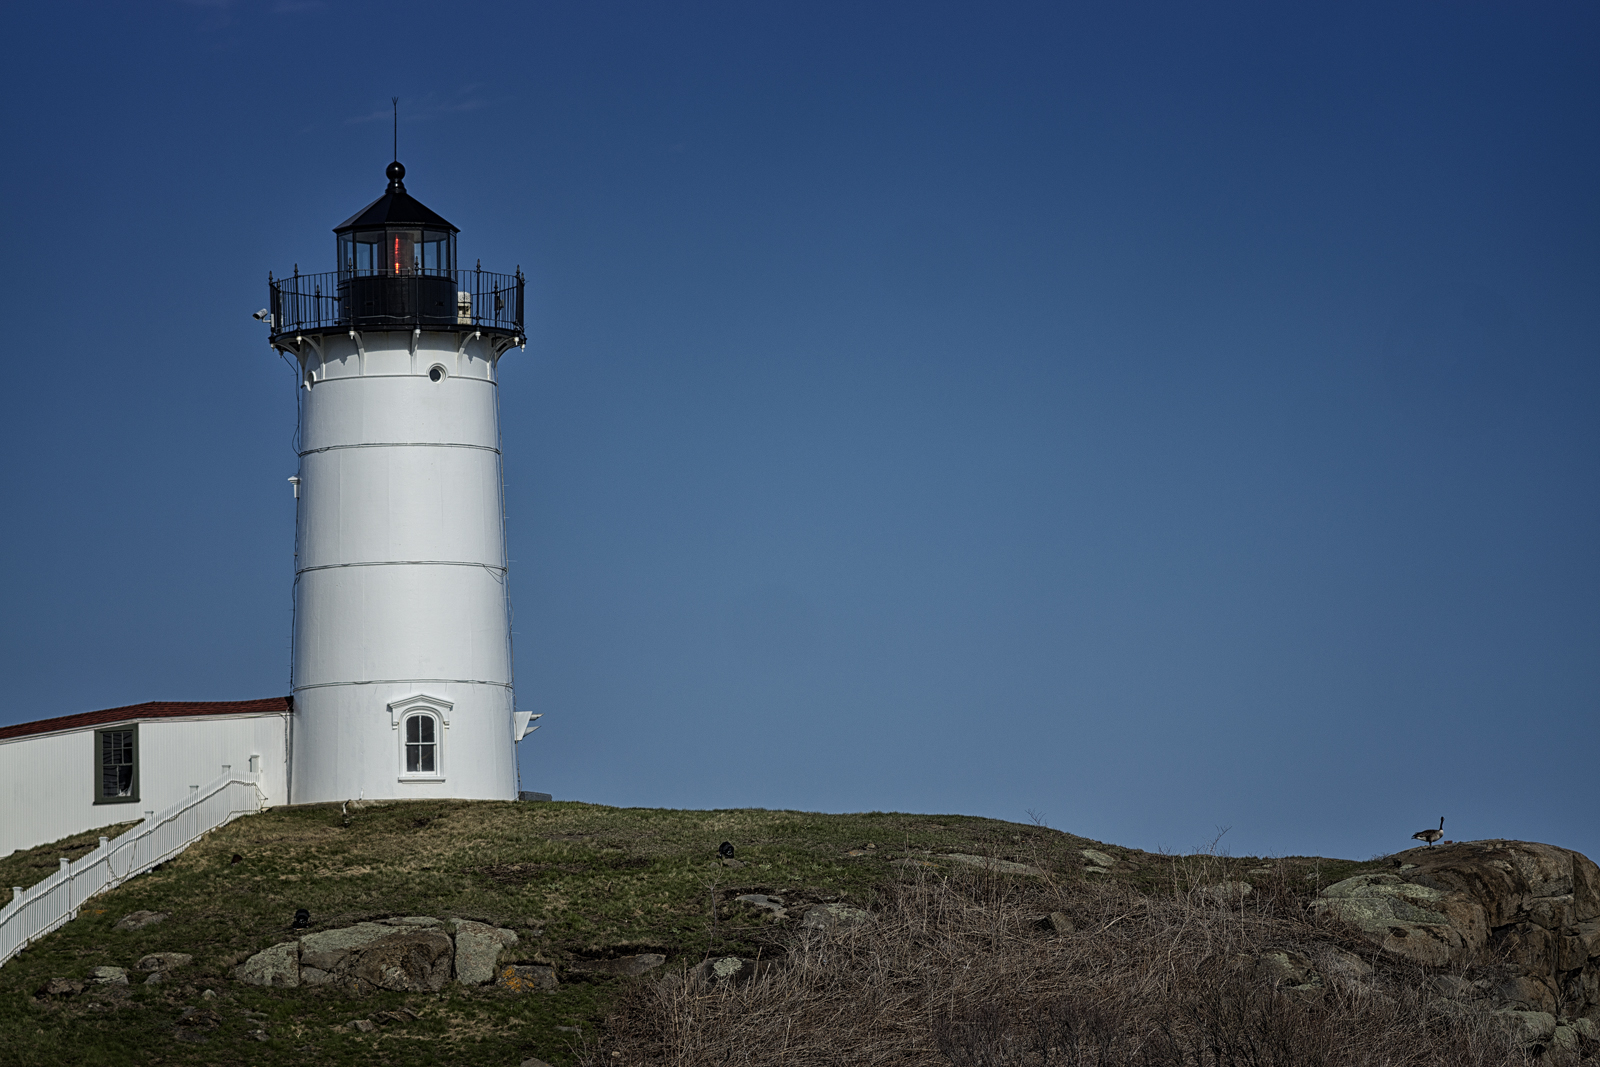 The Atlantic is in front of you, Cape Neddick lighthouse is behind you, said the goose. York, ME